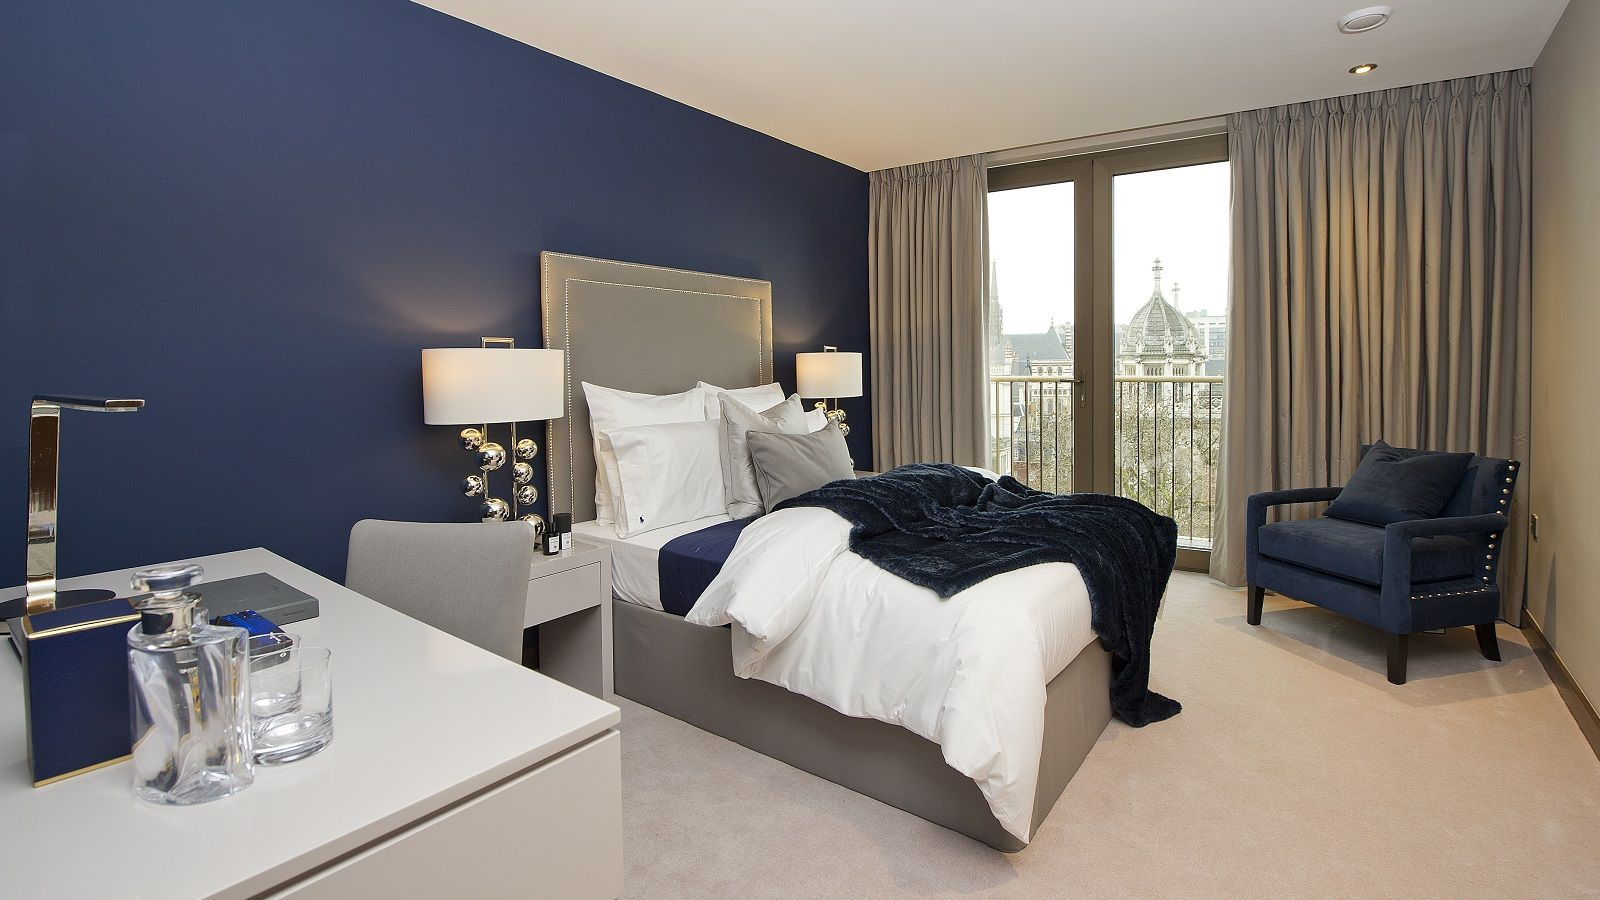 St Dunstan's Court Taylor Wimpey Central London. Bedroom